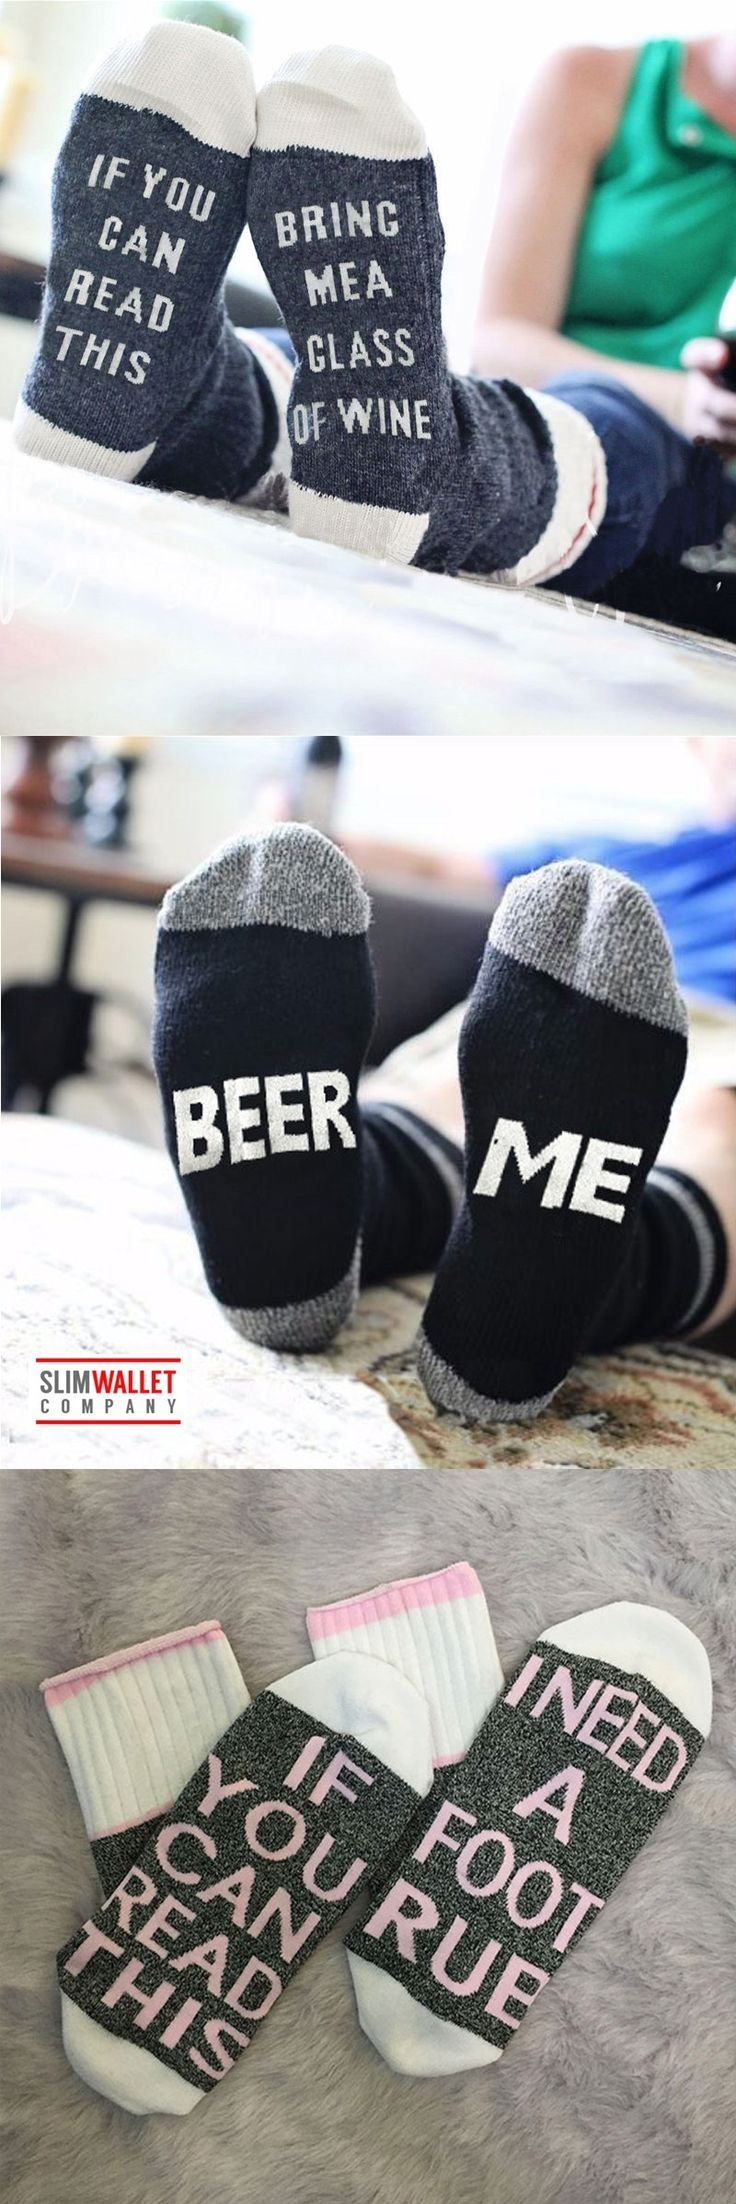 Funny sock stocking stuffer gifts